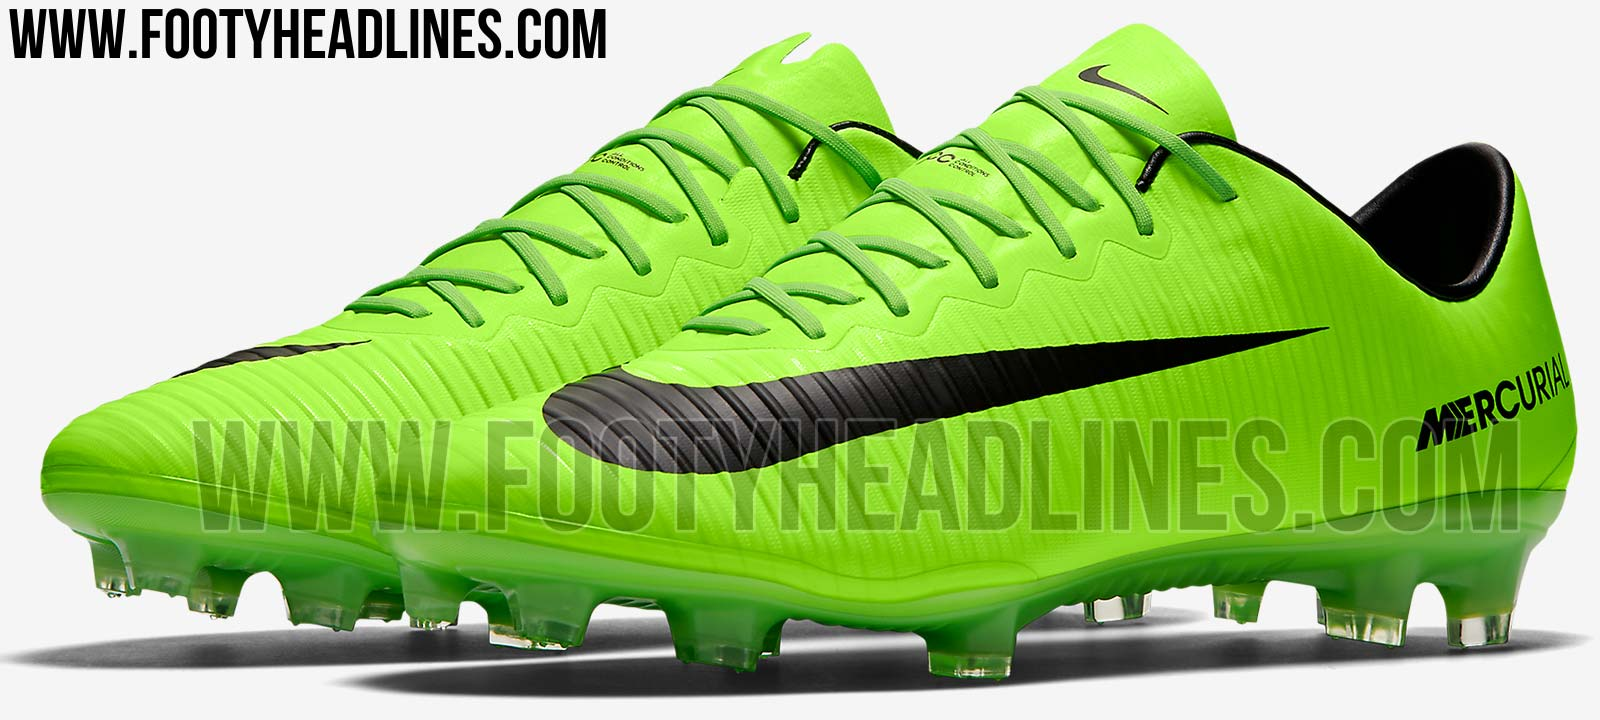 electric green nike mercurial vapor xi radiation flare. Black Bedroom Furniture Sets. Home Design Ideas